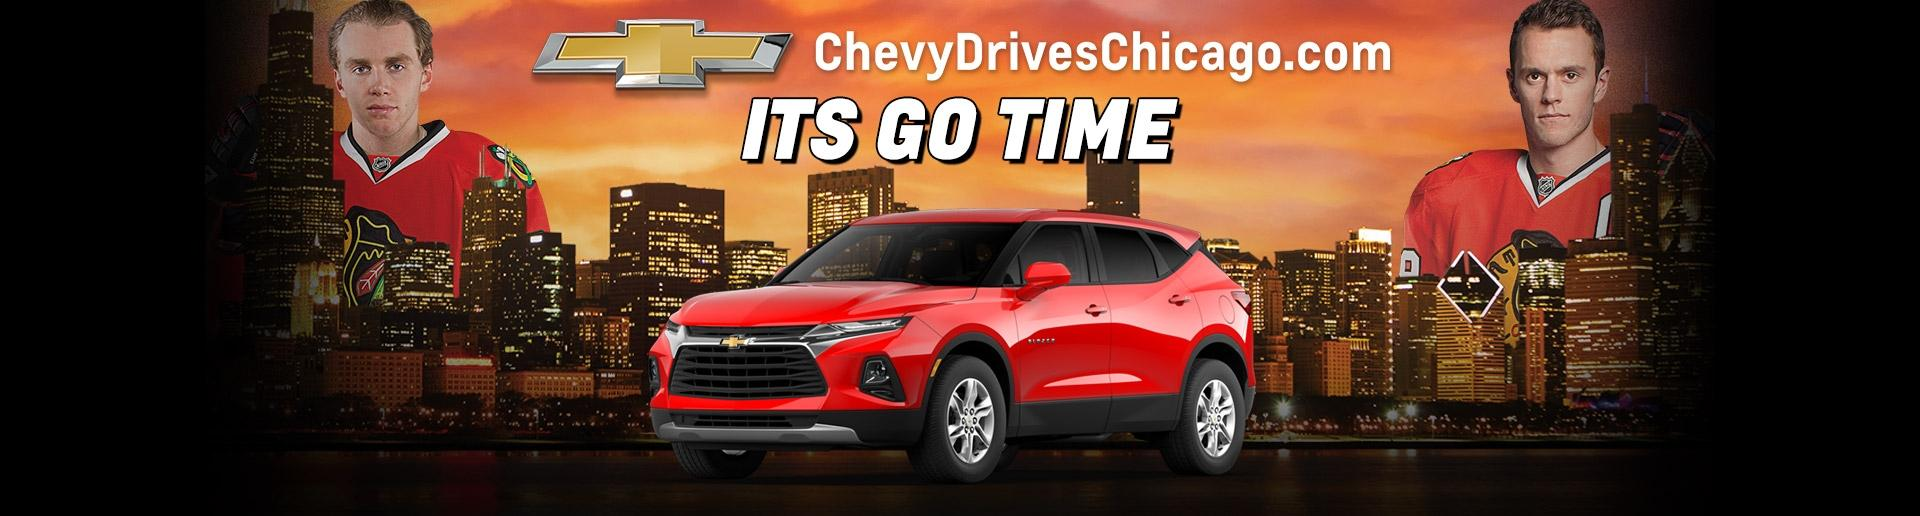 It's Go Time at Your Chicagoland and NW Indiana Chevy Dealers | Chevy Drives Chicago